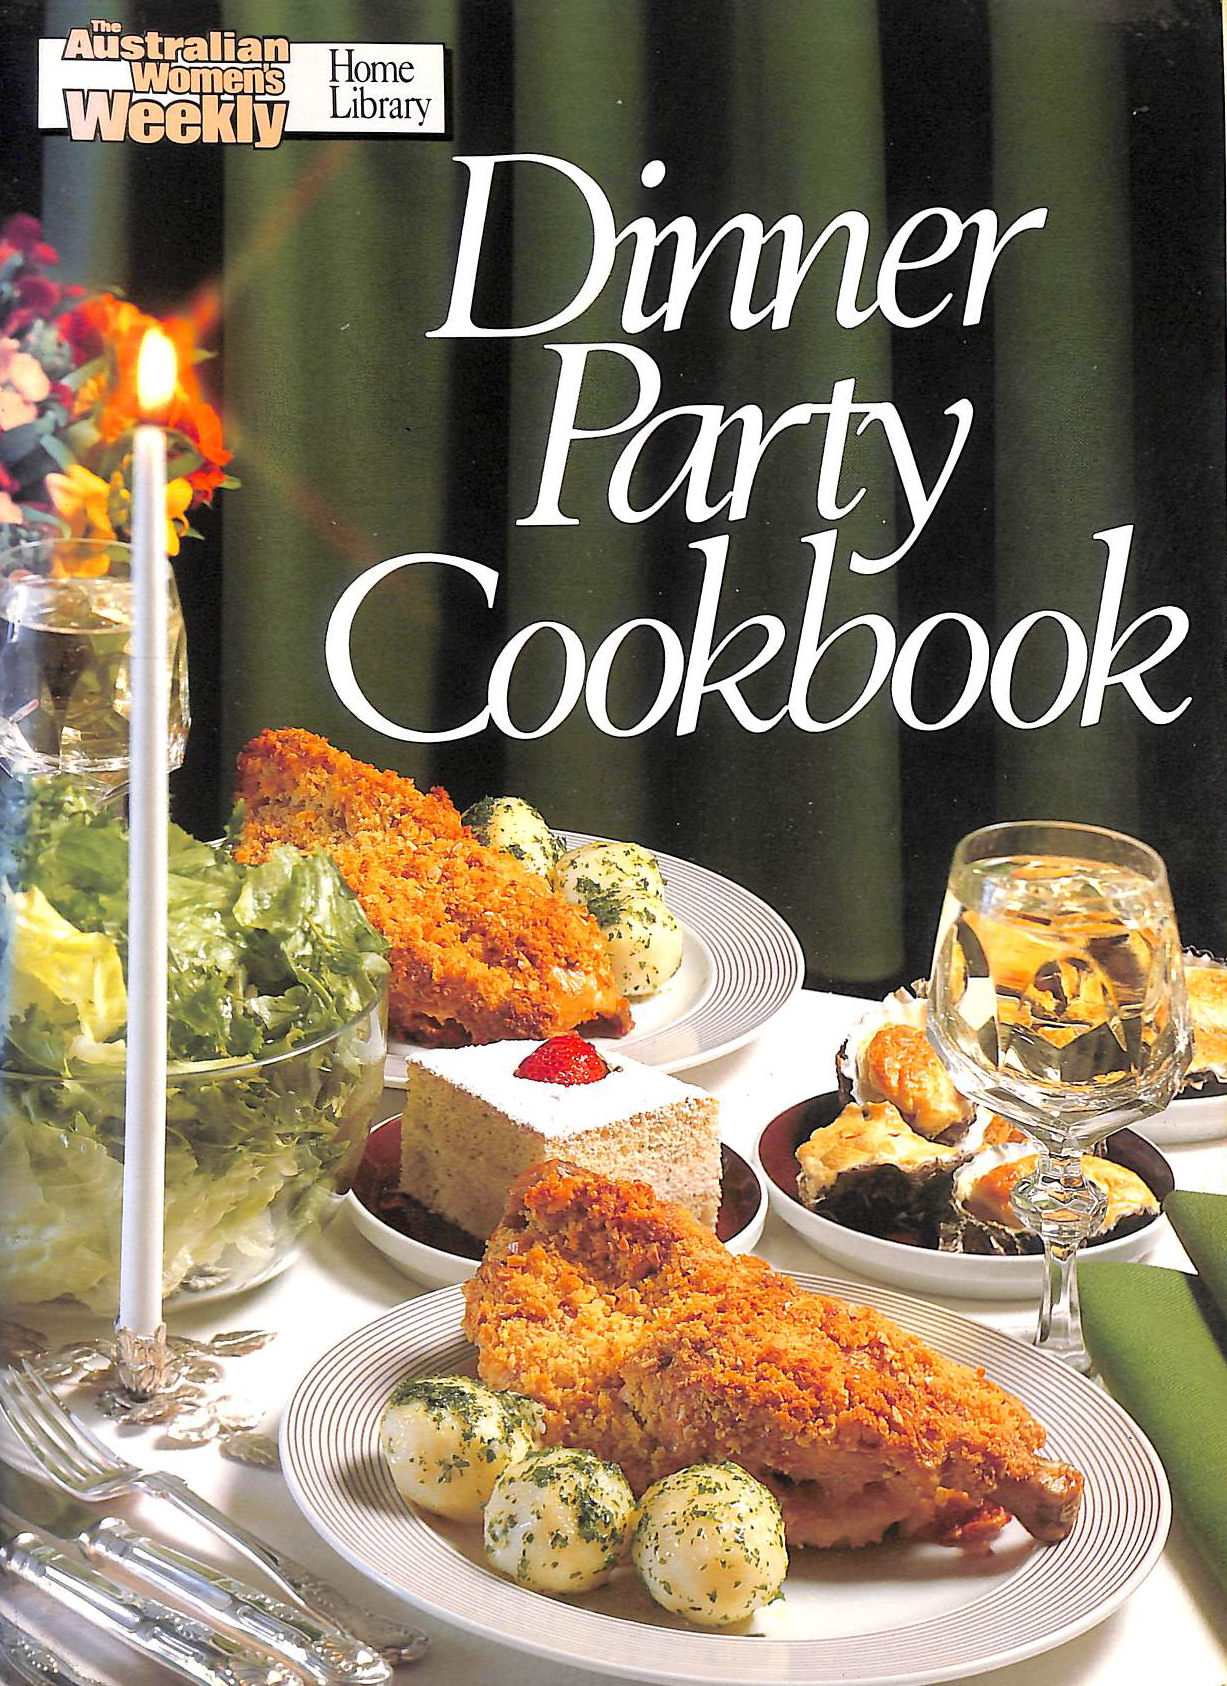 """Image for Dinner Party Cook Book: No. 1: Vol 1 (""""Australian Women's Weekly"""" Home Library)"""